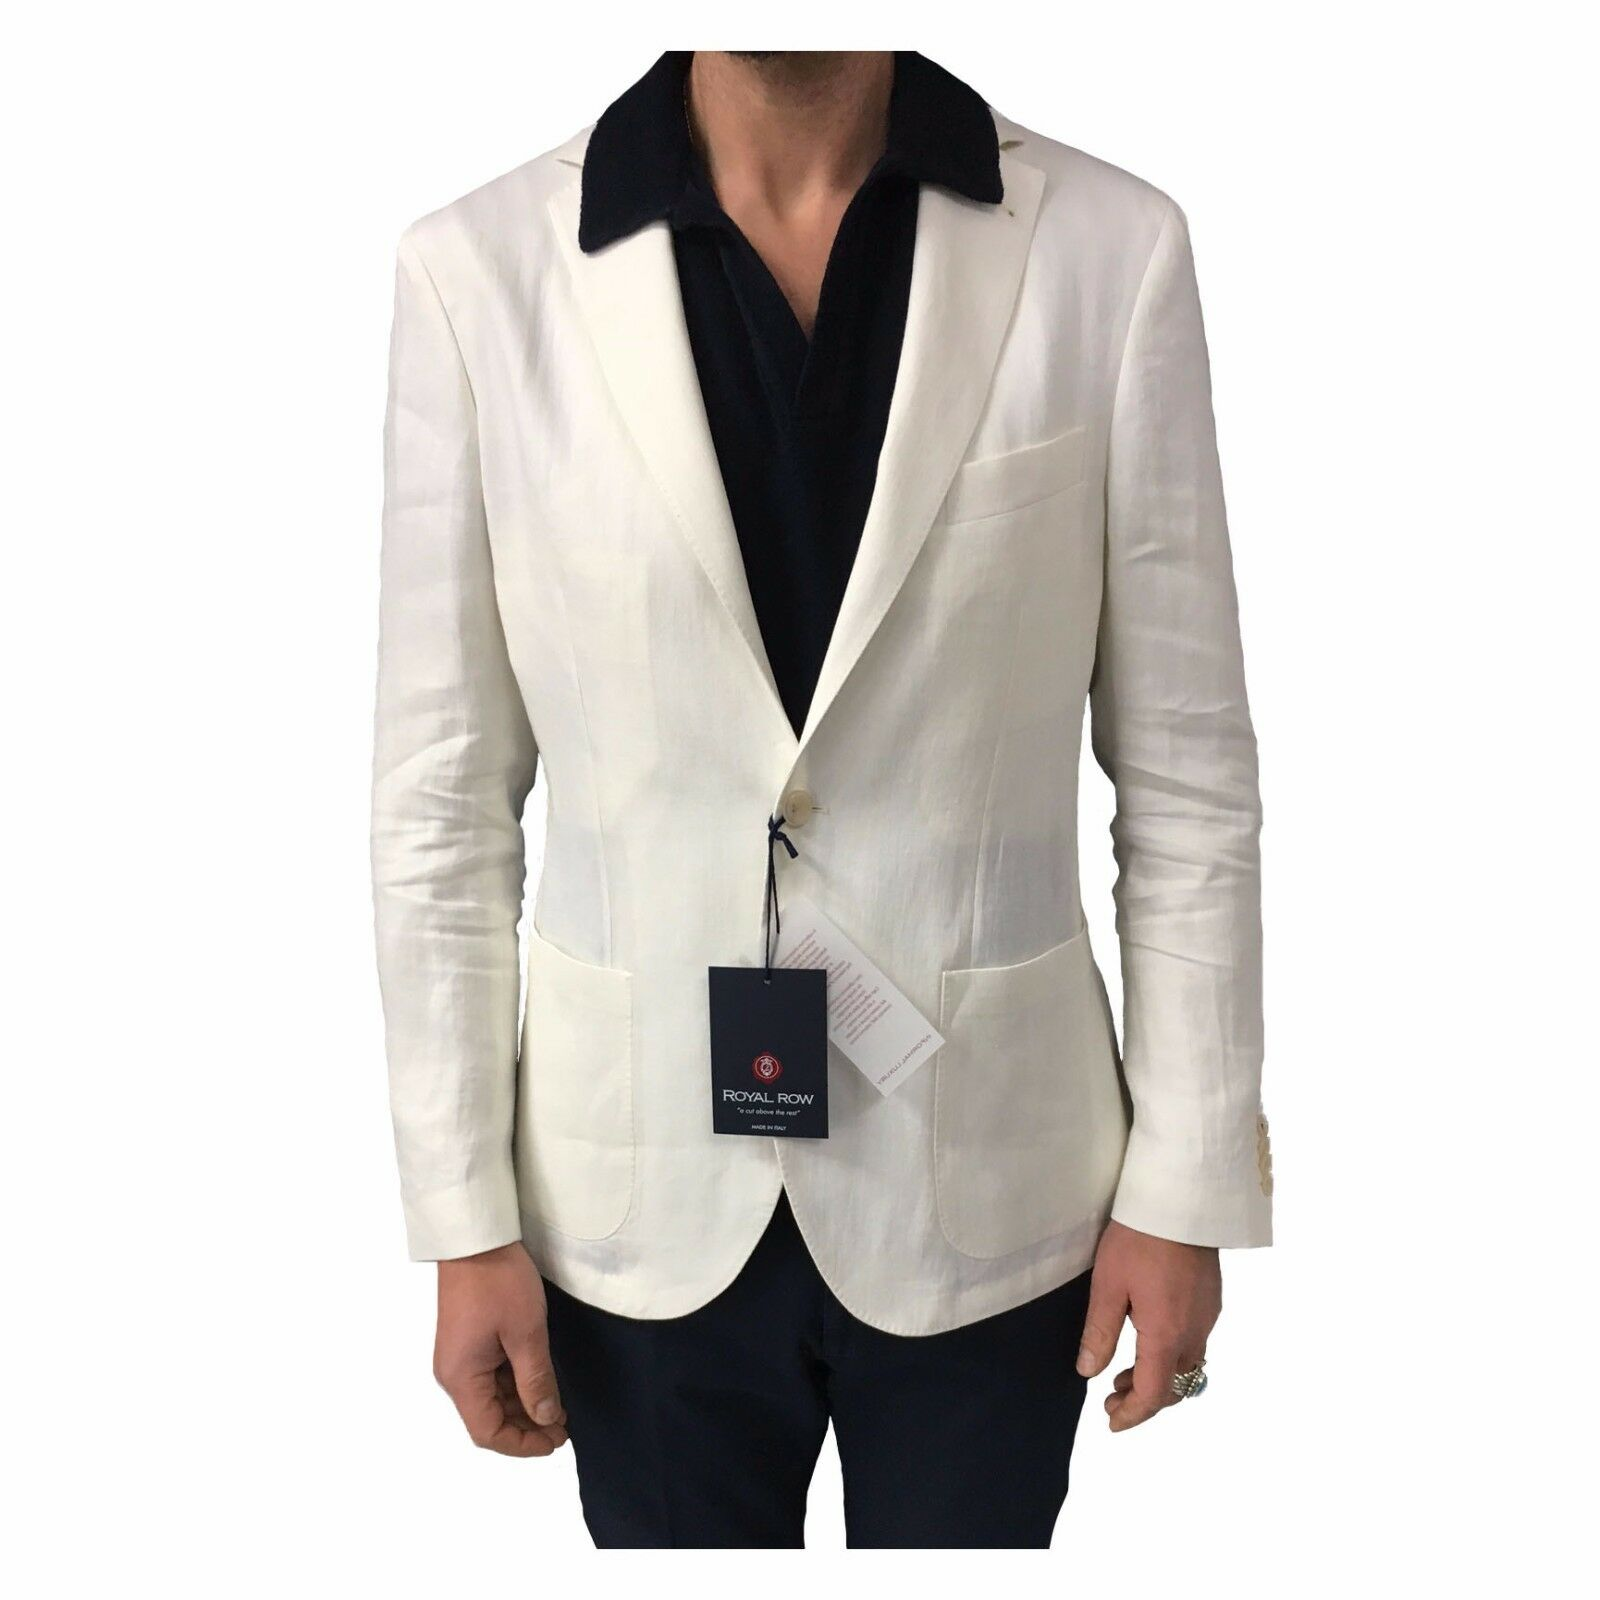 Royal Row Jacke Herren Ungefüttert Creme Mod London G90S Tragbarkeit Slim 100%